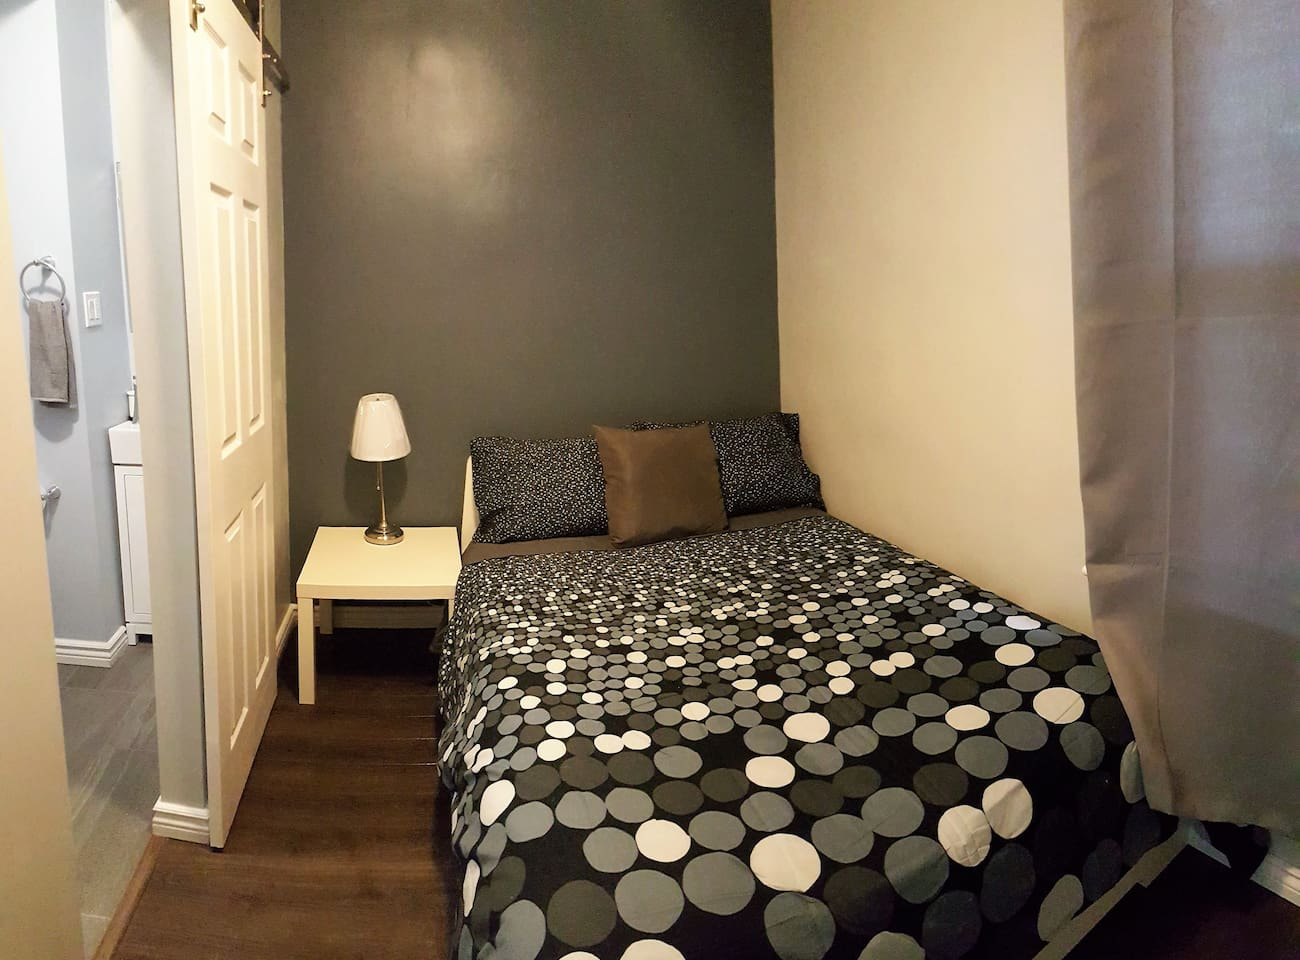 ORCHID ROOM: Upper unit, FIRM orthopedic double bed, 42 inch HD Smart TV's with Netflix, youtube and easy to use! En-suite private shower. Tiny cozy room.